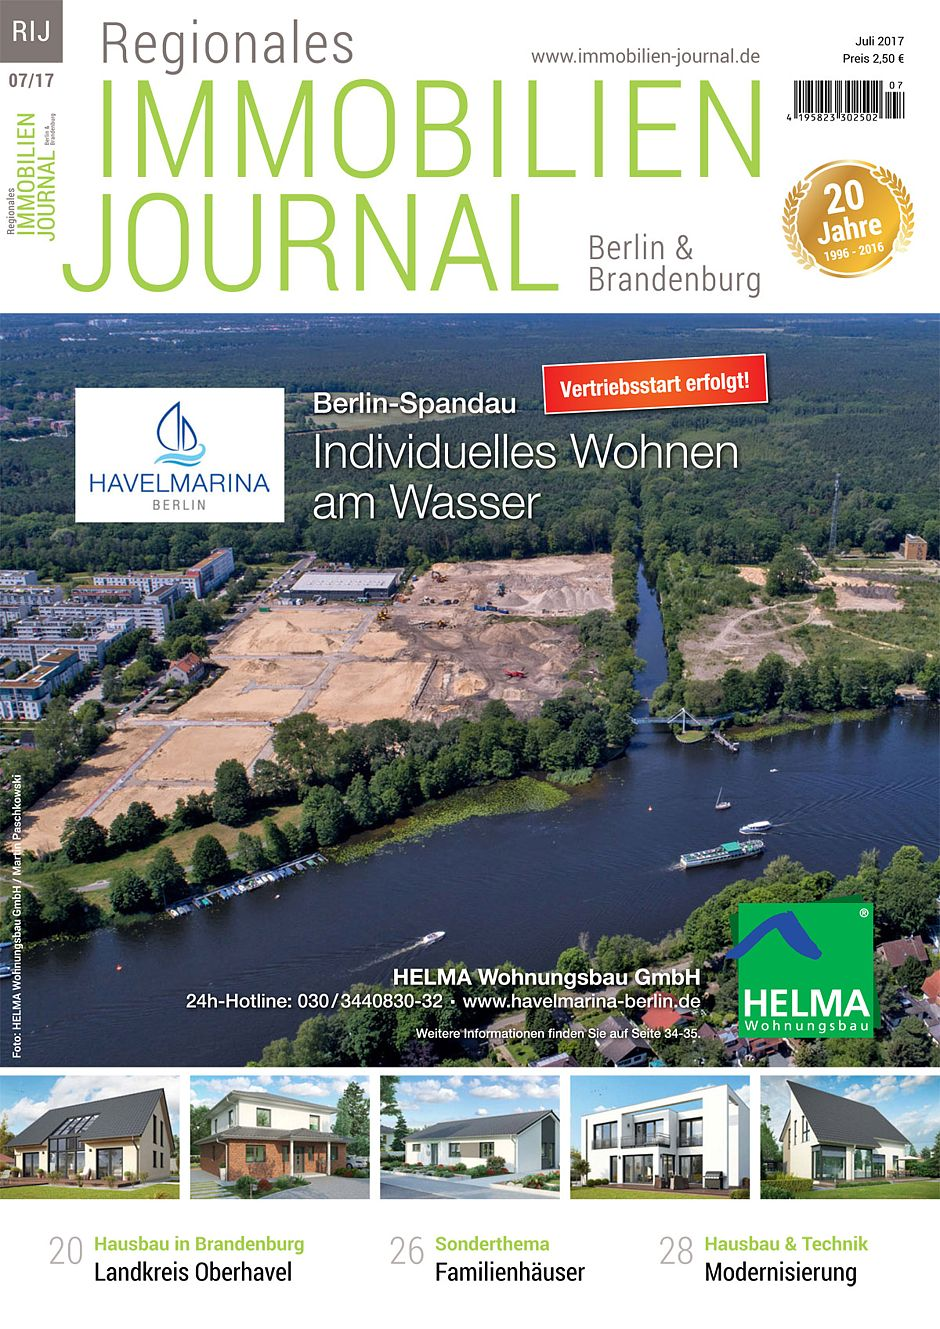 Baufirmen Berlin Brandenburg regionales immobilien journal berlin brandenburg juli 2017